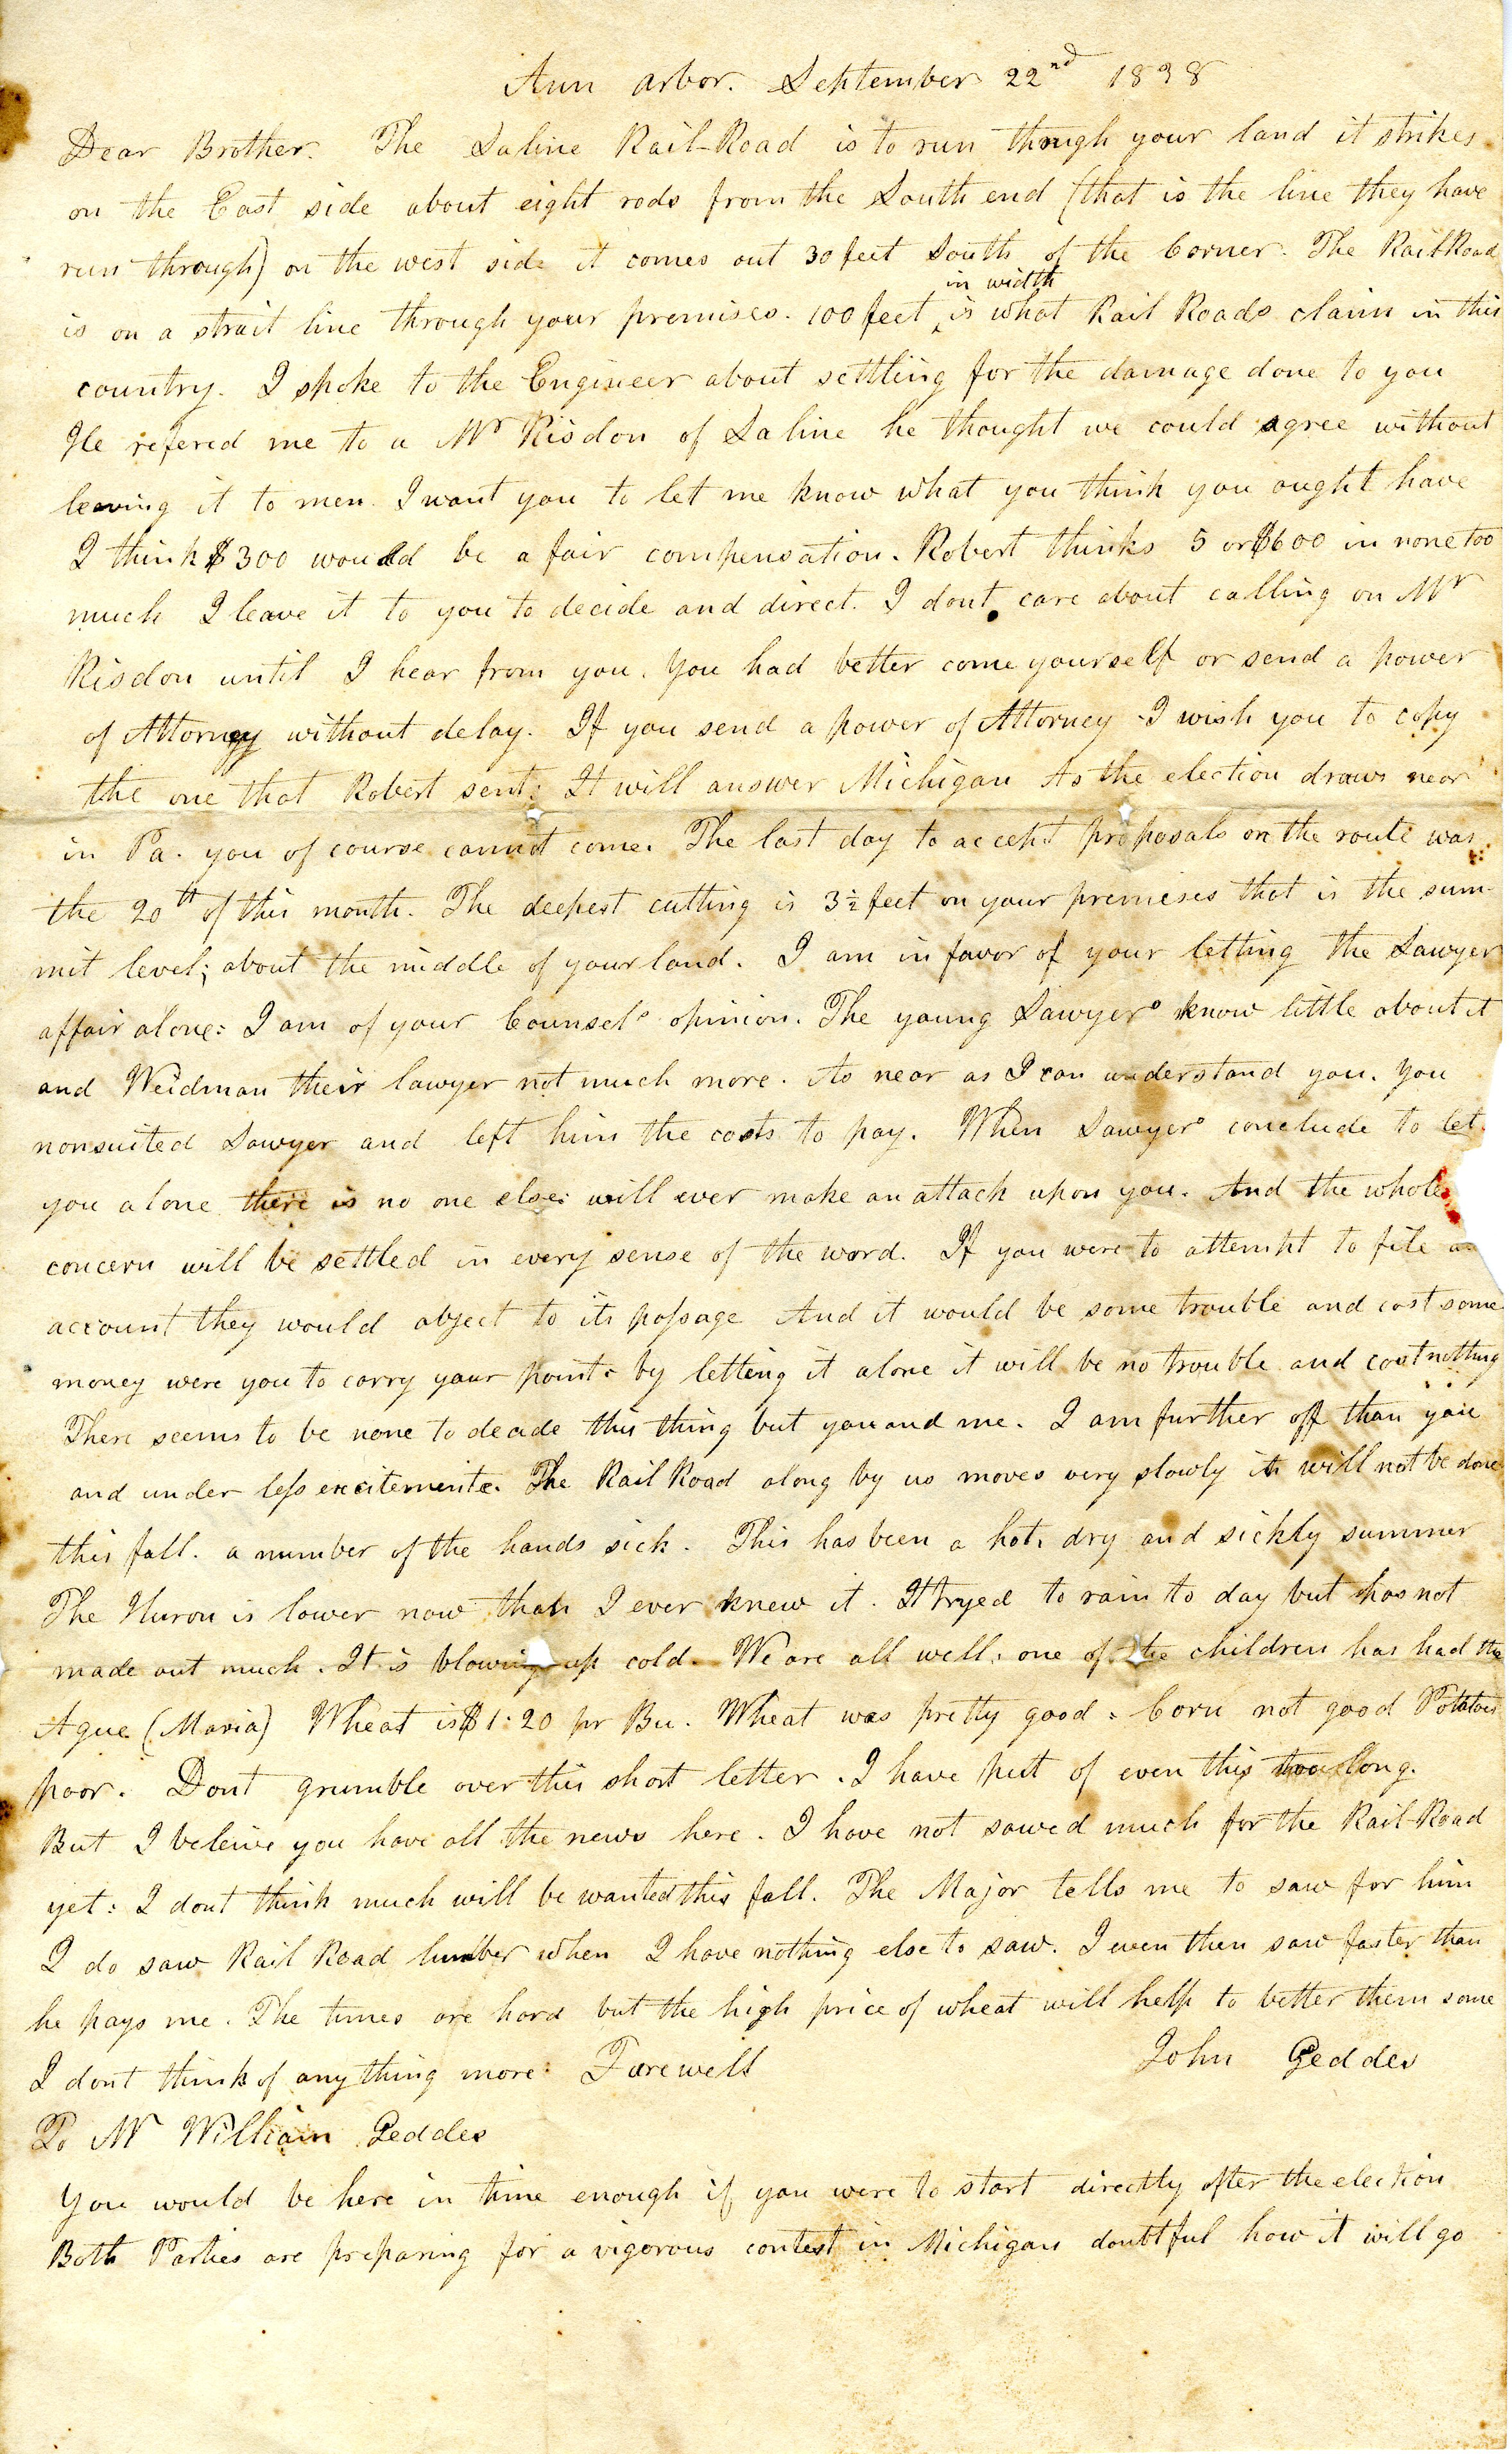 Letter From John Geddes to William Geddes, September 22, 1838 image